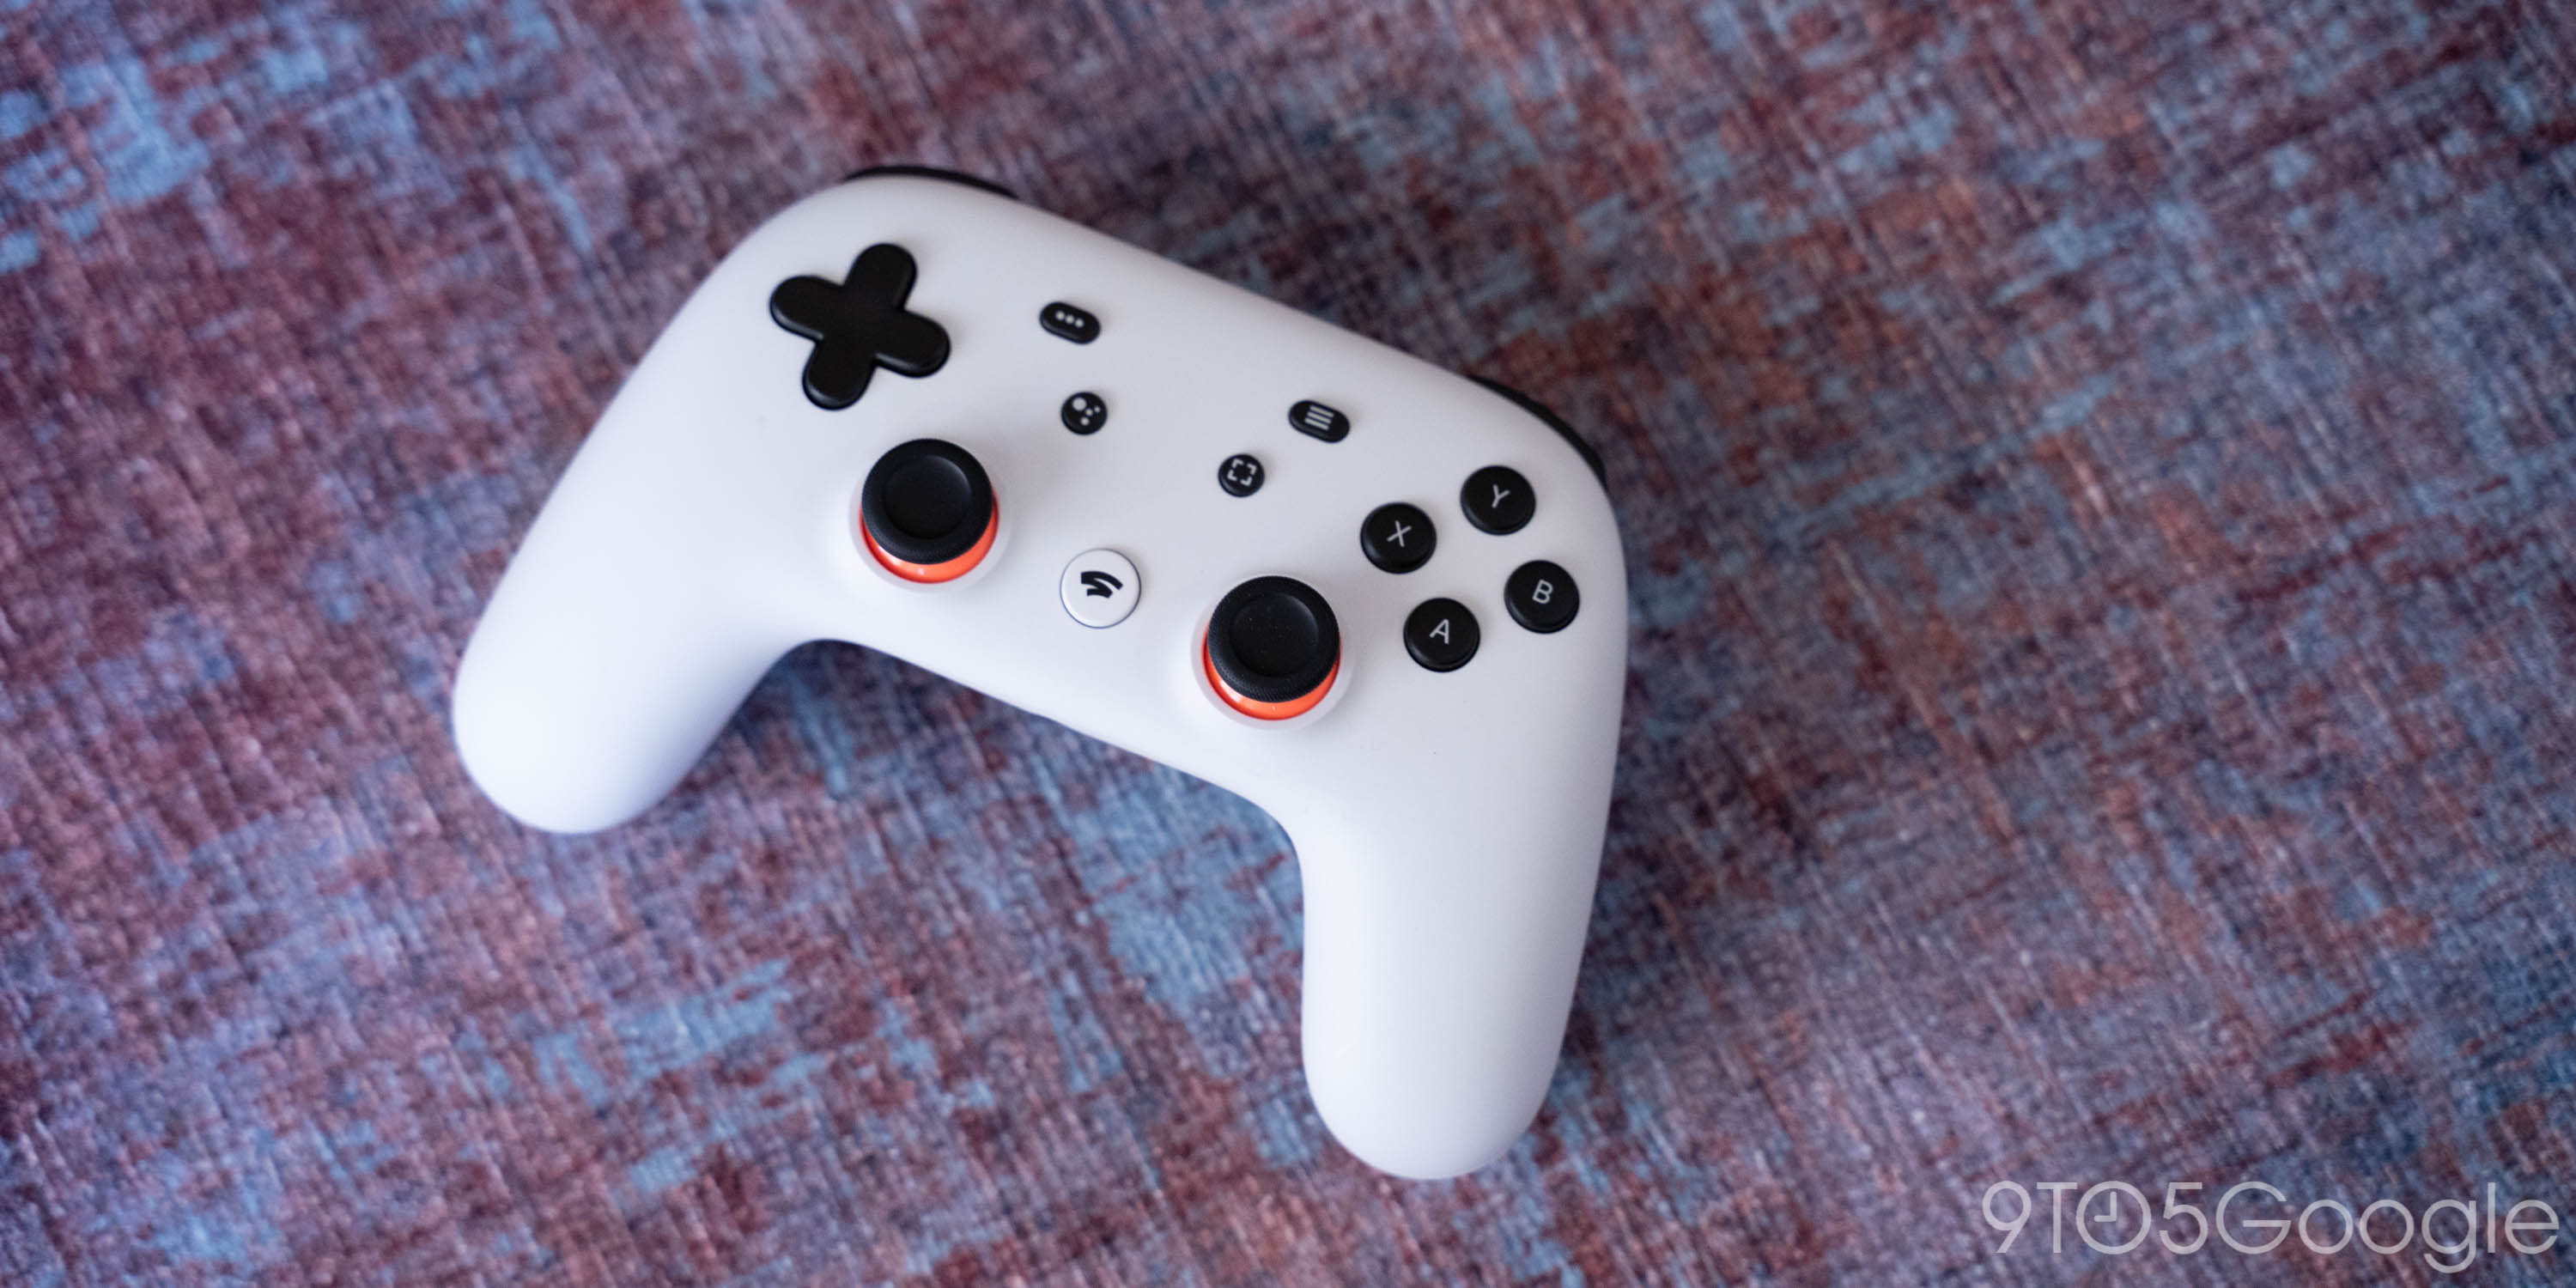 Stadia 2.29 preps pre-ordering games, messaging, more - 9to5Google